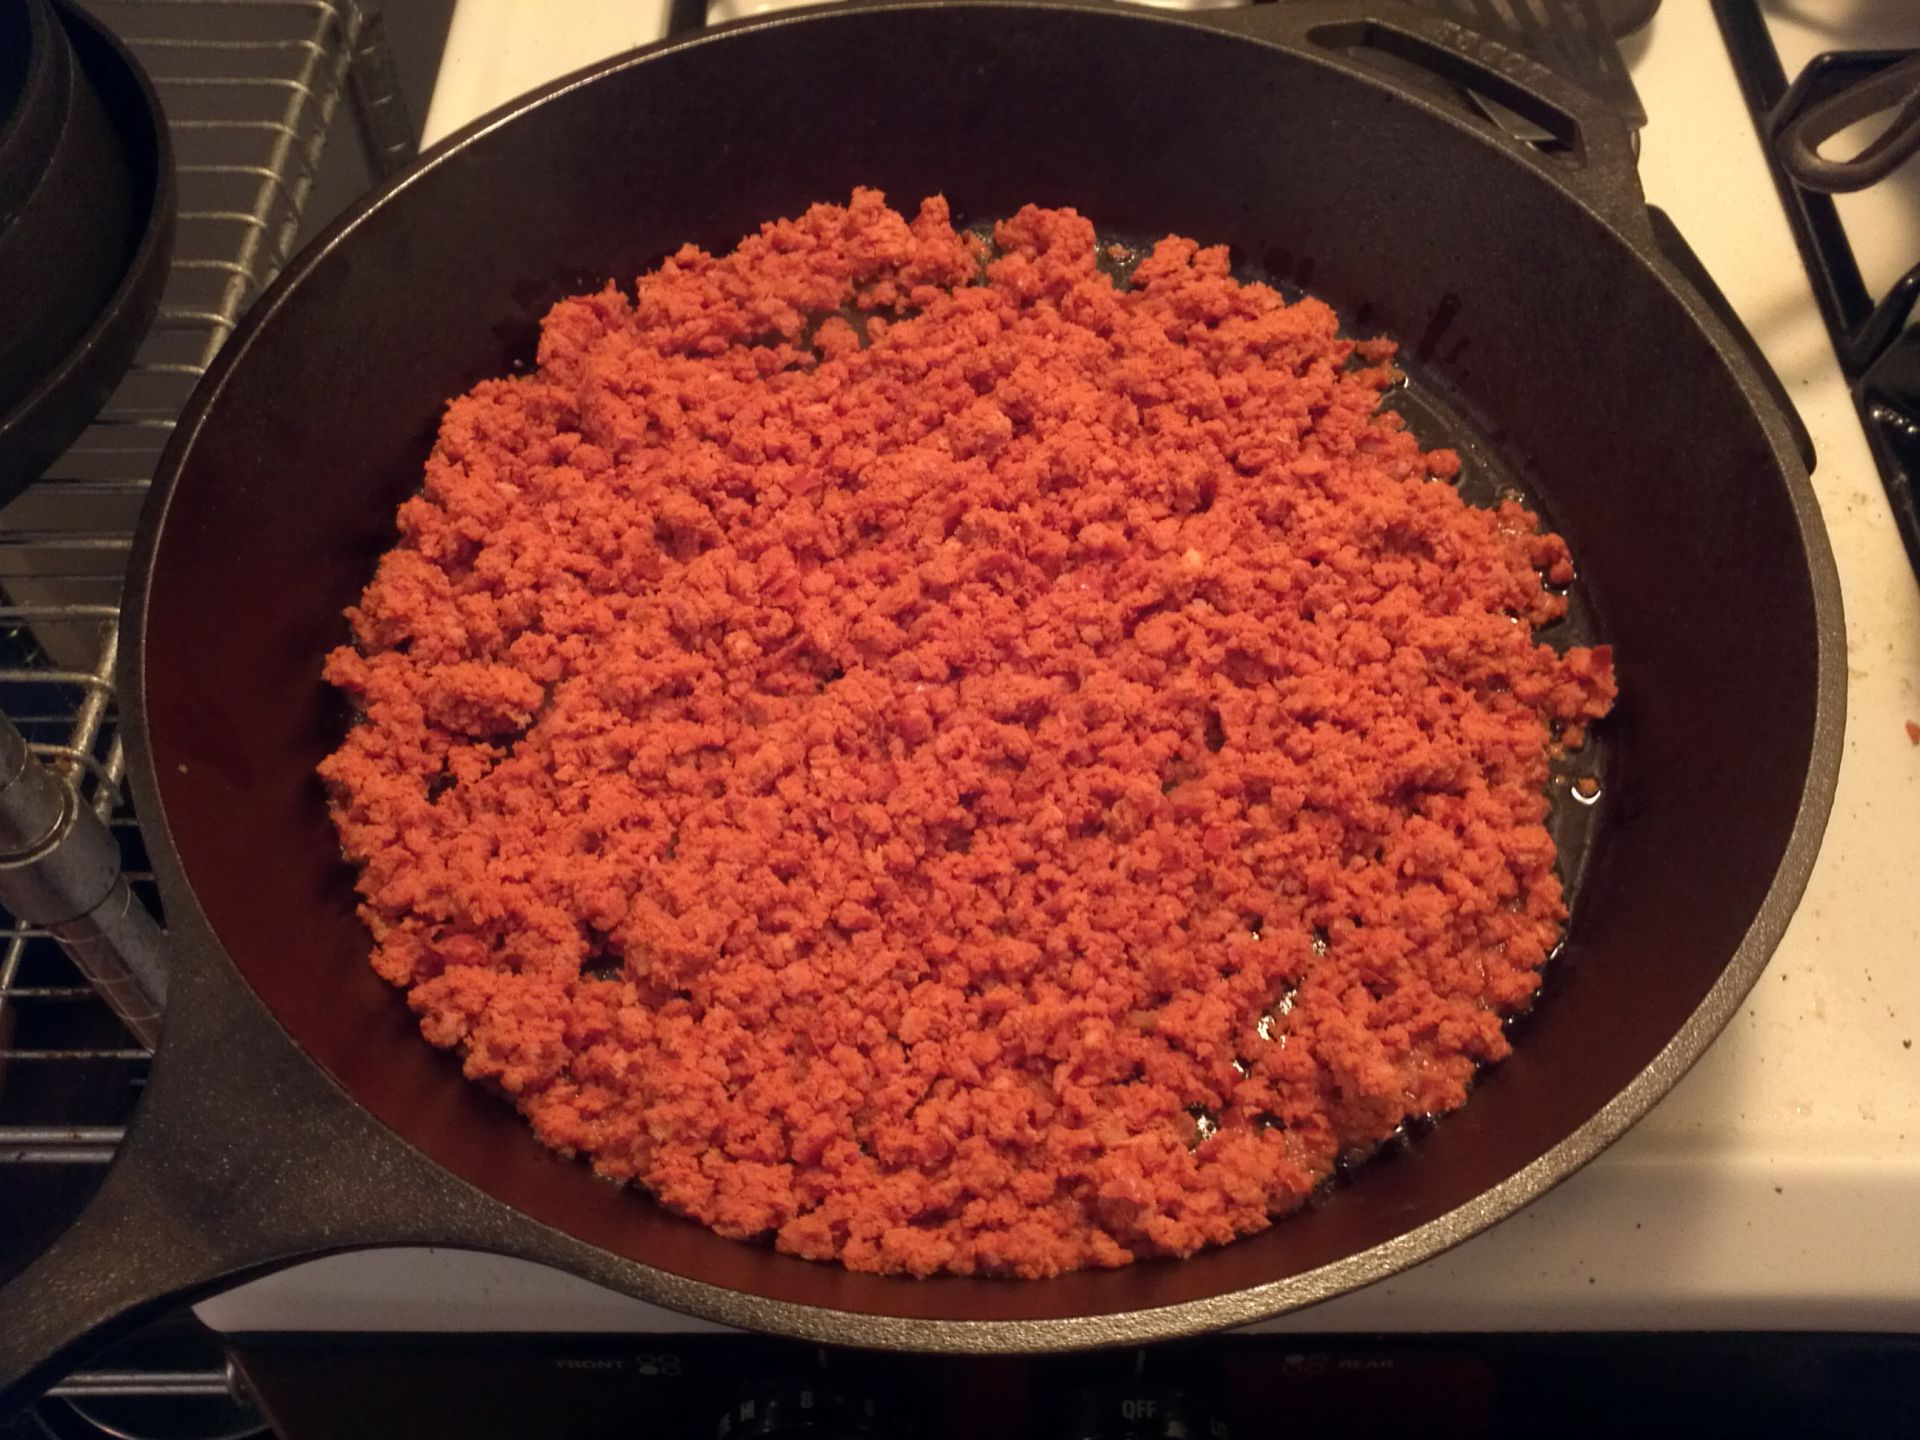 Spread The Ground Chorizo Out On The Skillet And Cook Away!